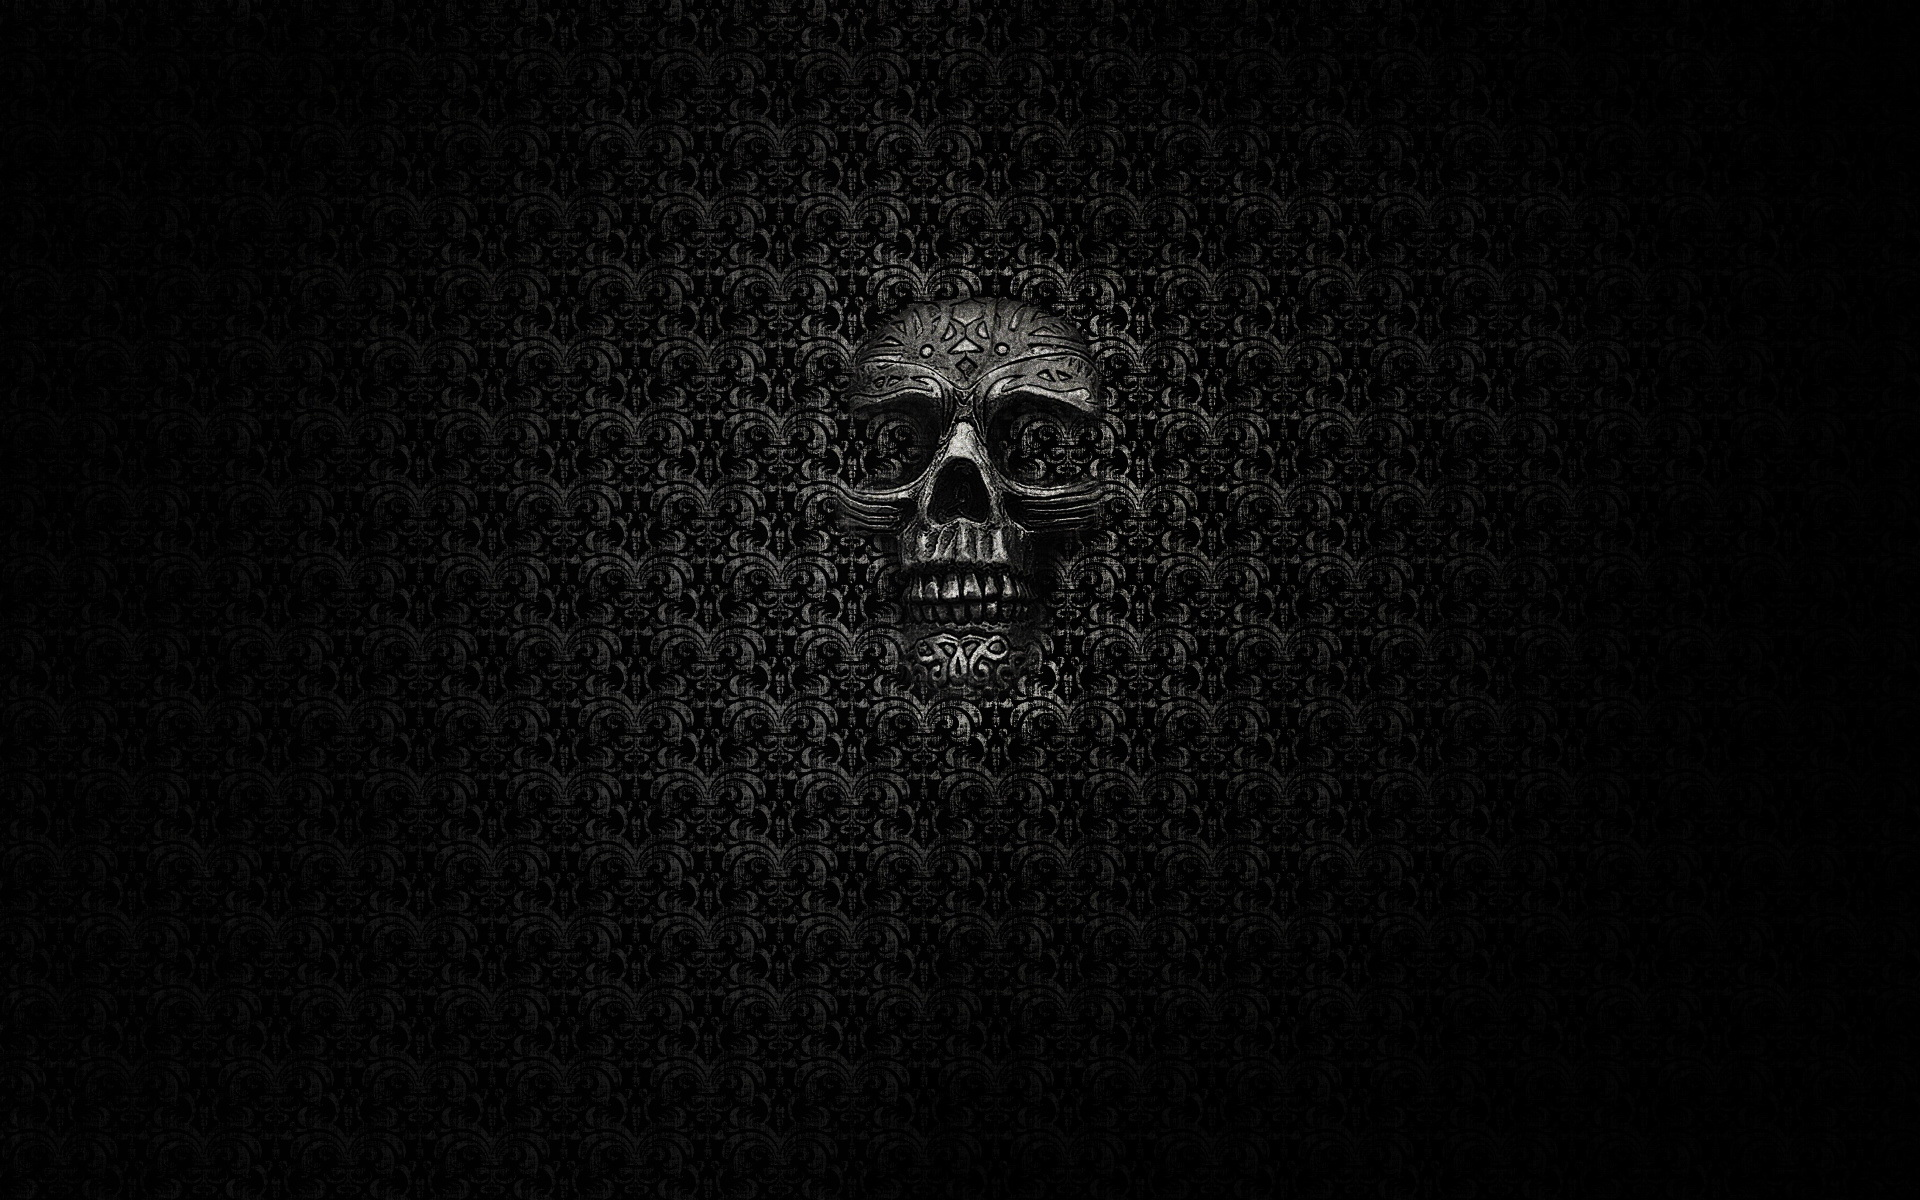 skull wallpaper wallpapers hd - photo #21